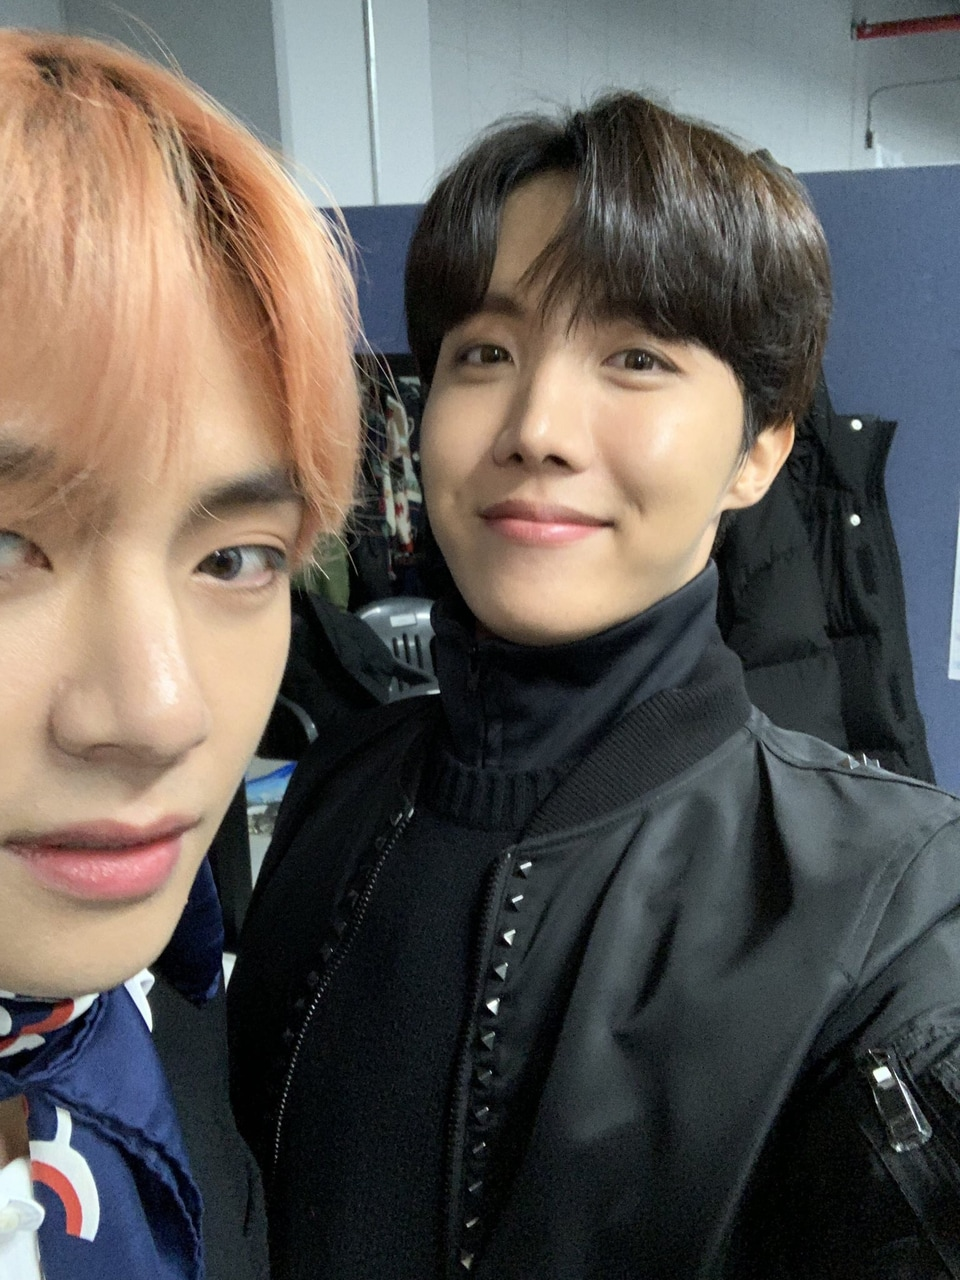 jhope, hoseok, bts selca and bts